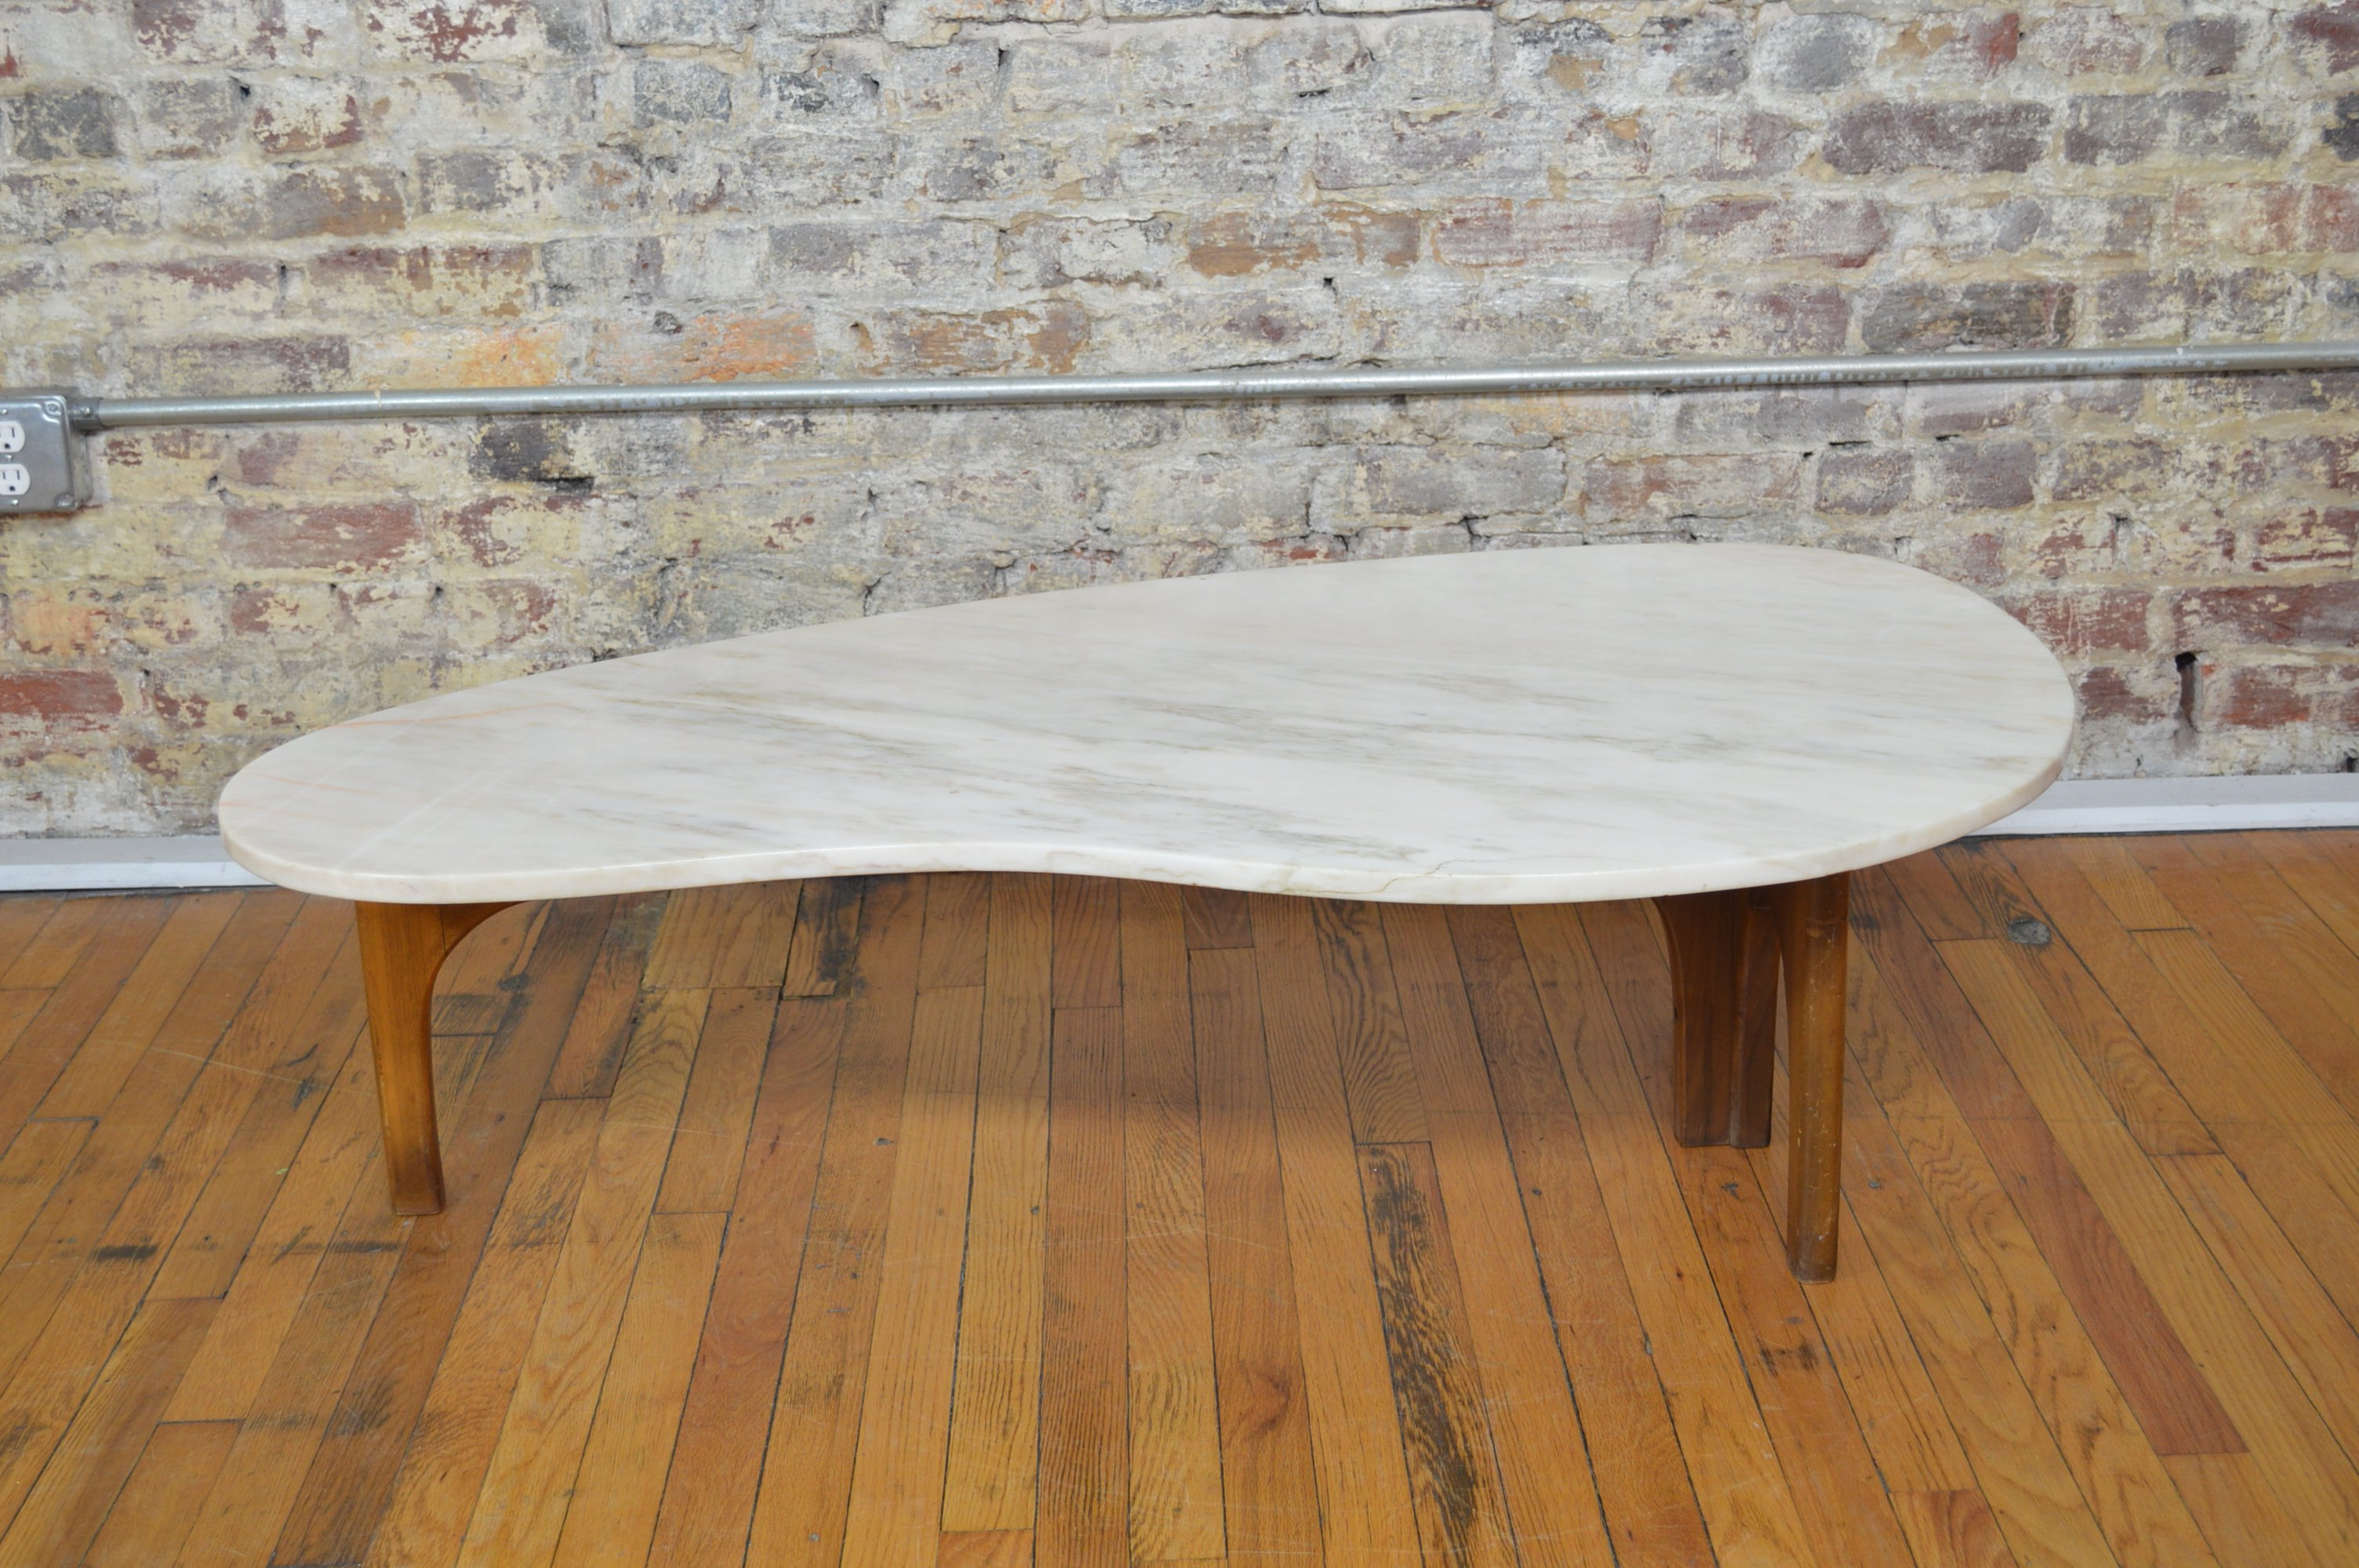 Fashionable Extra Mid Century Modern Marble Coffee Table Unique Harvey Probber For Mid Century Modern Marble Coffee Tables (Gallery 9 of 20)